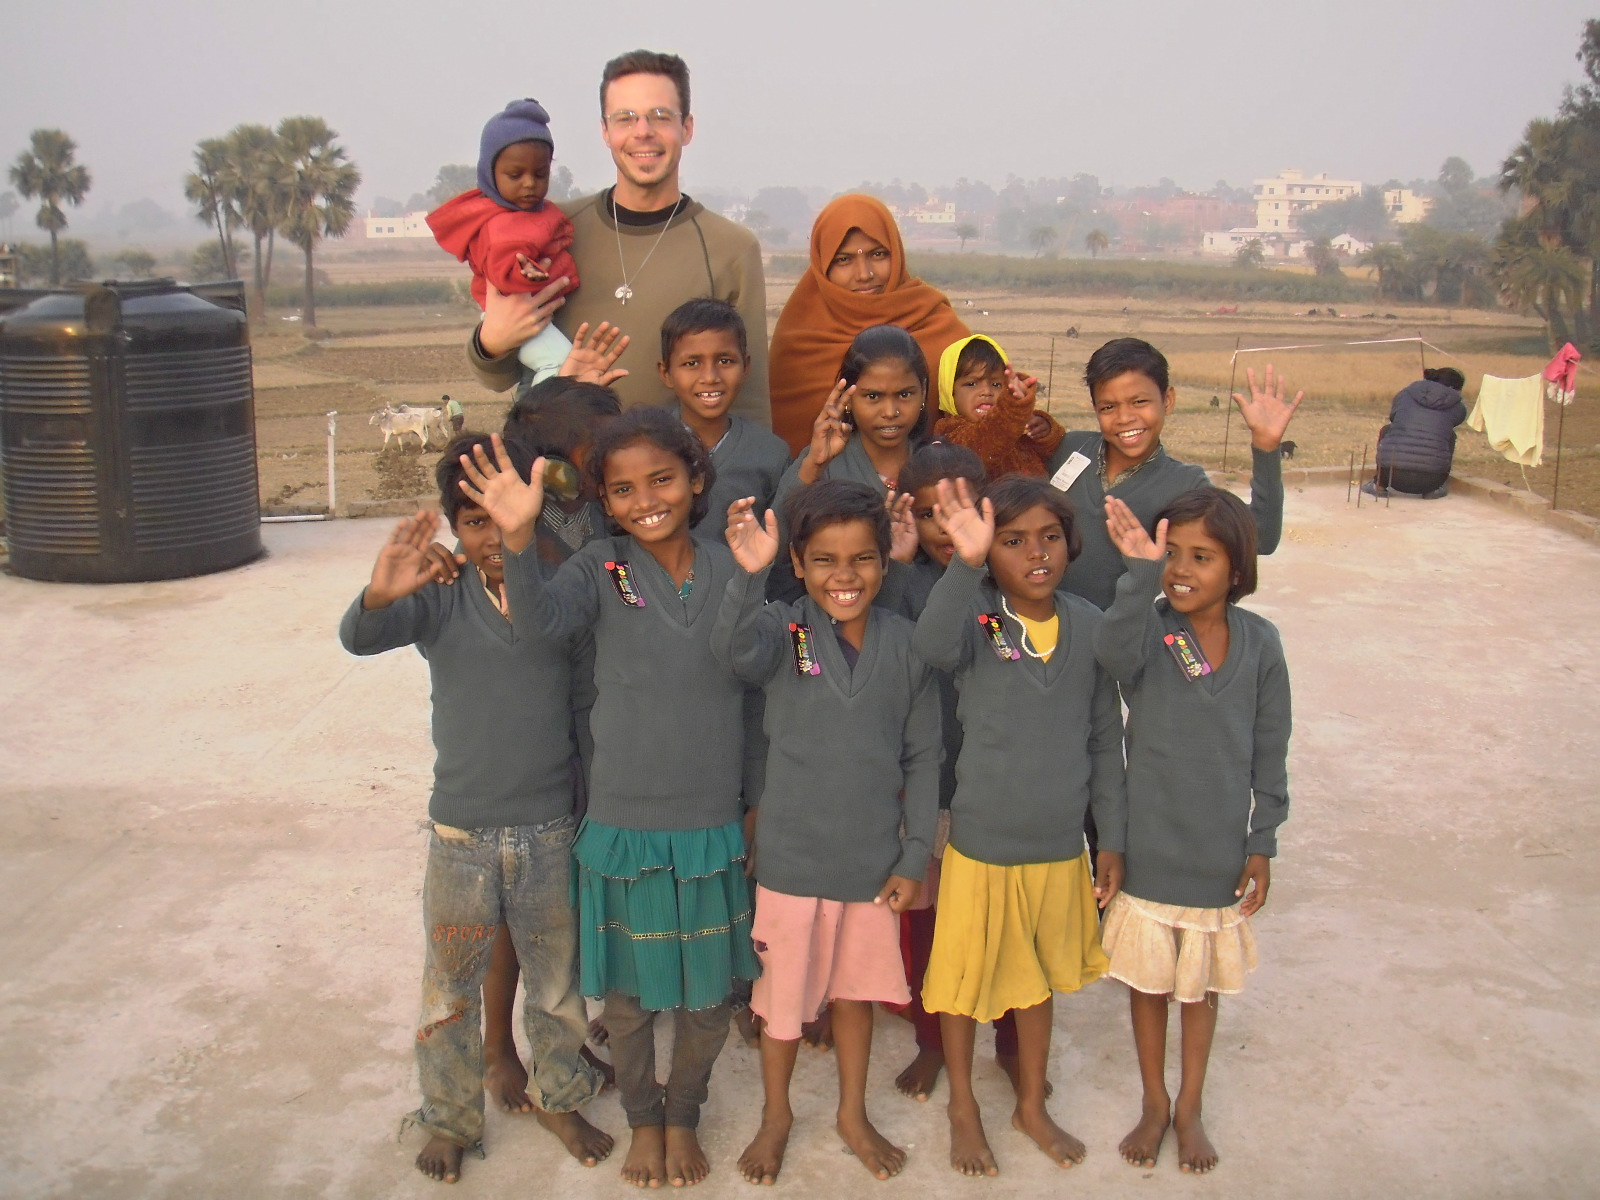 Br. Baiocco at Children's Home in India